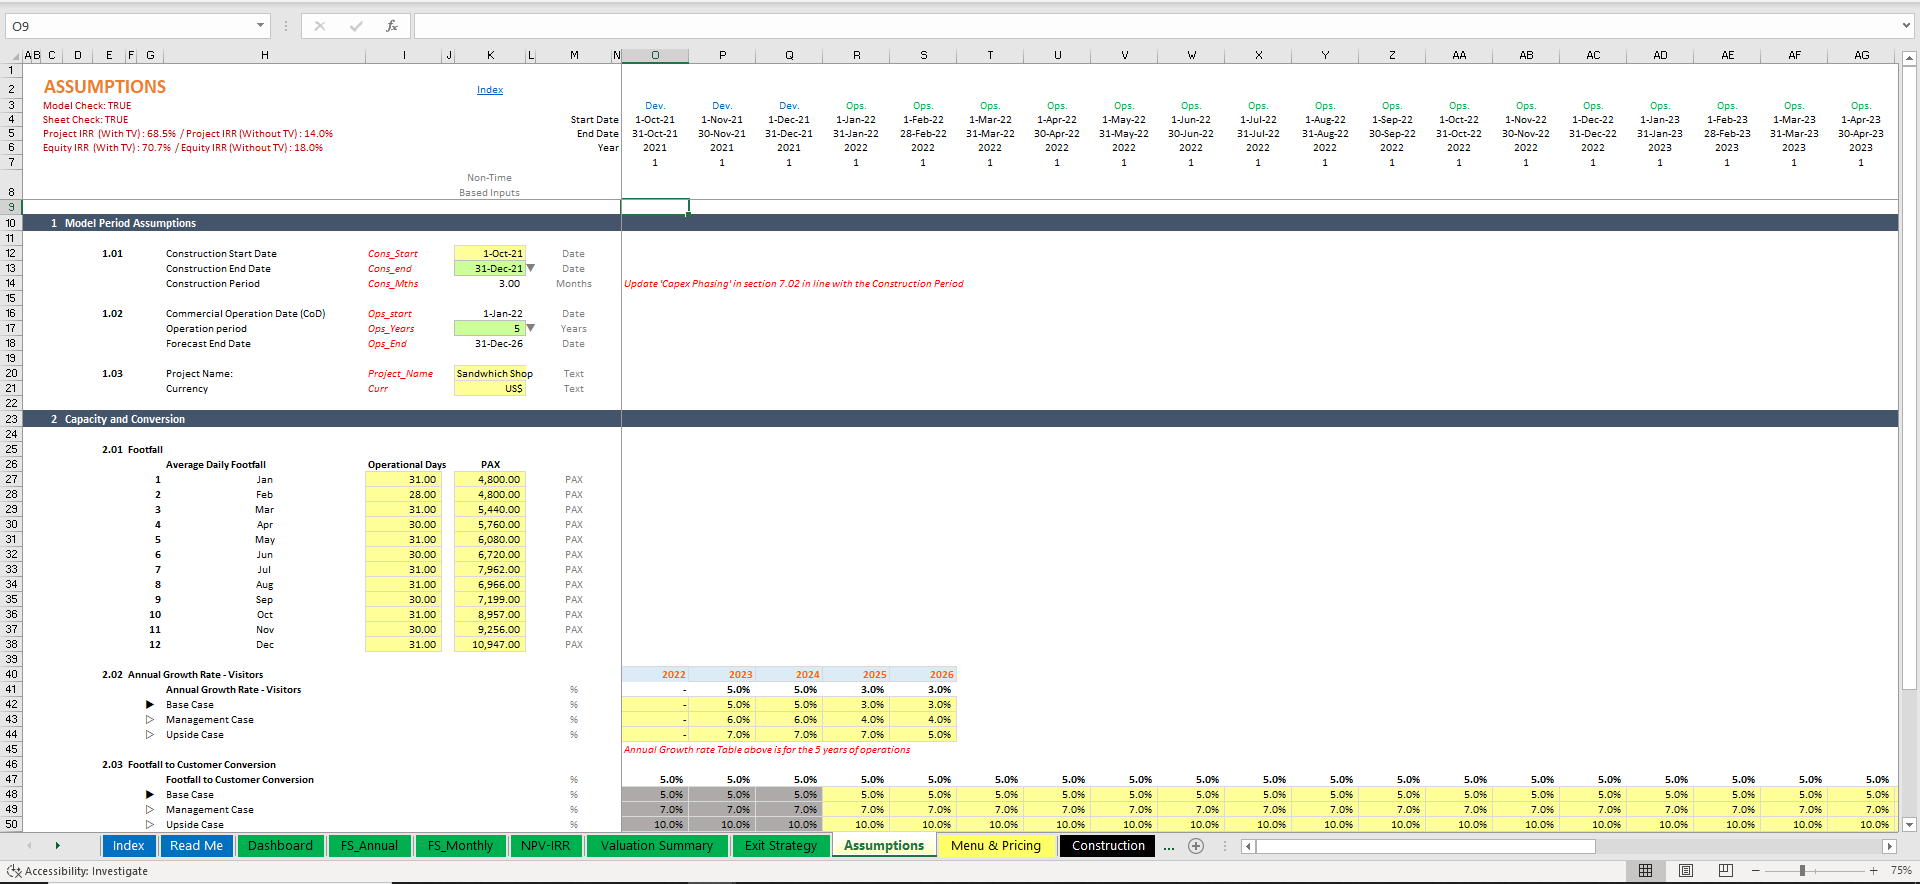 Pizzeria - 3 Statement Financial Model with 5 years Monthly Projection and Valuation